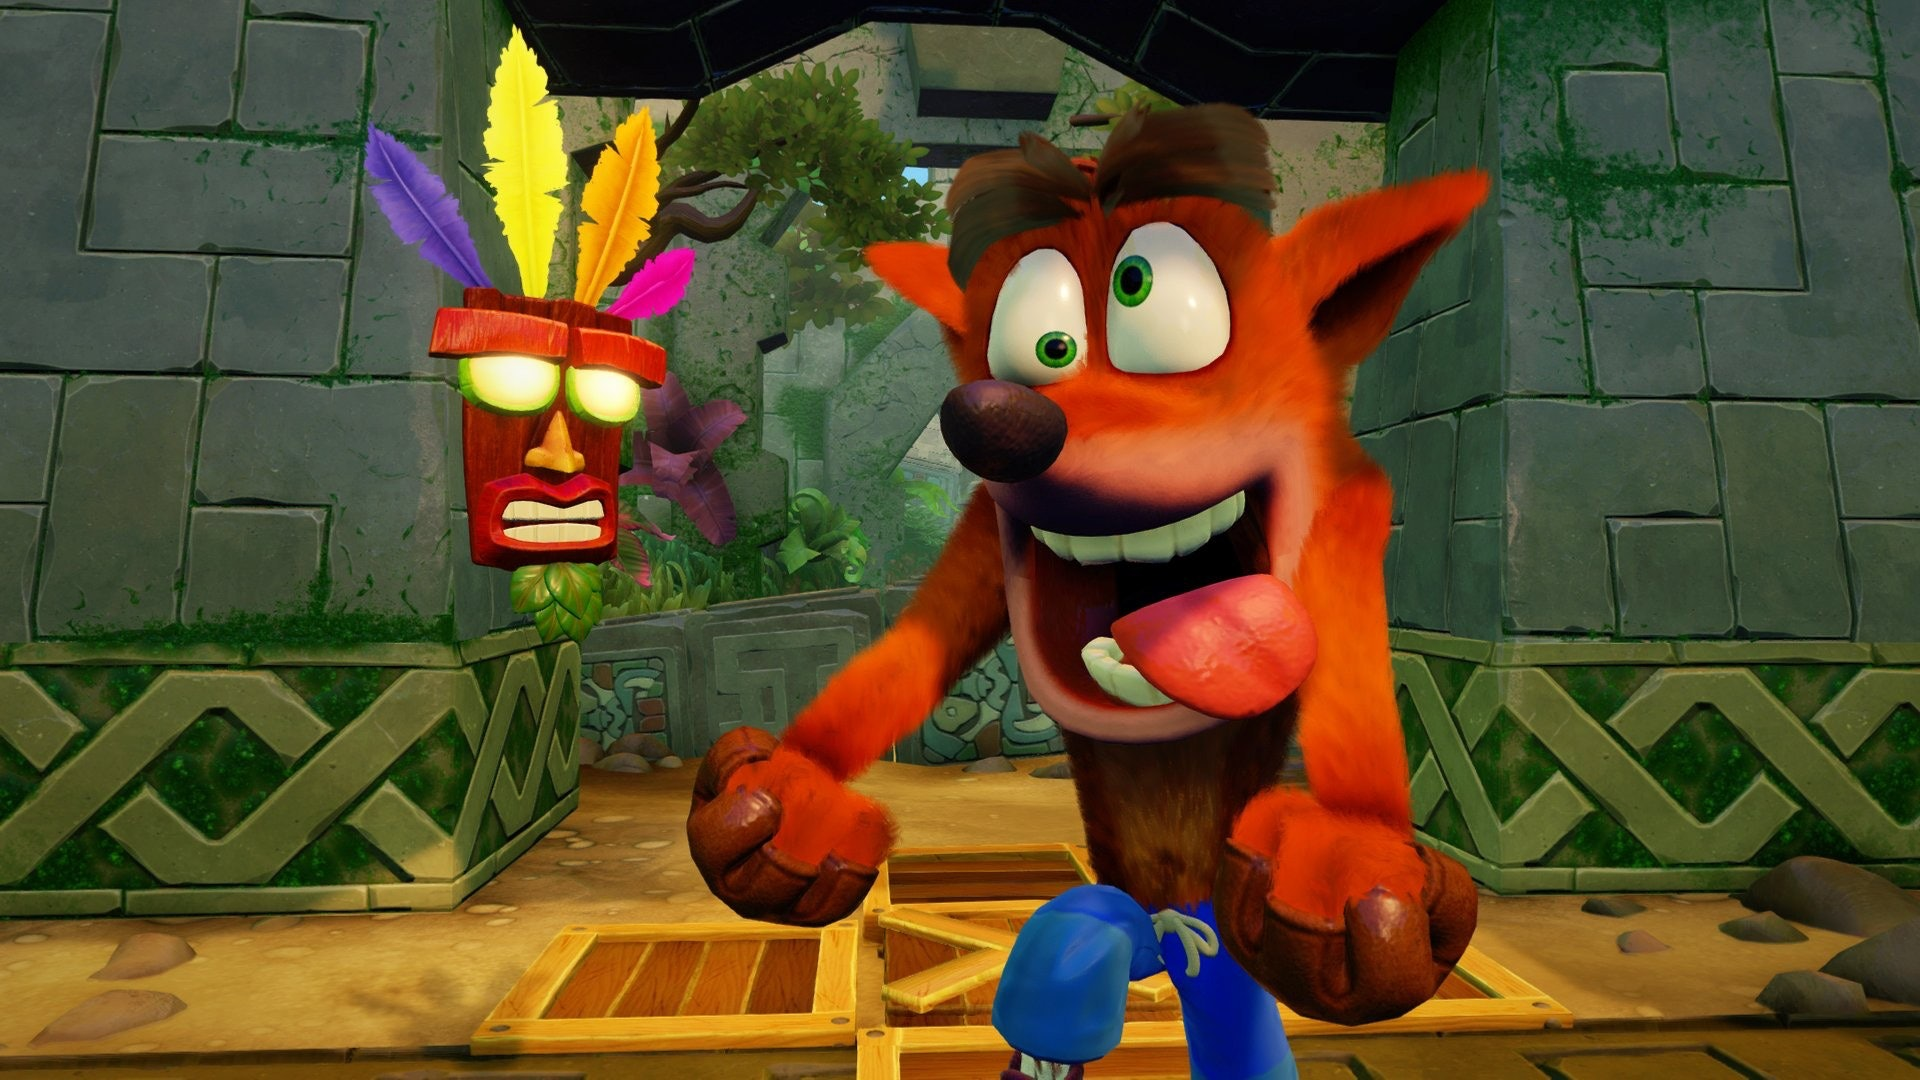 crash bandicoot game super smash bros ultimate